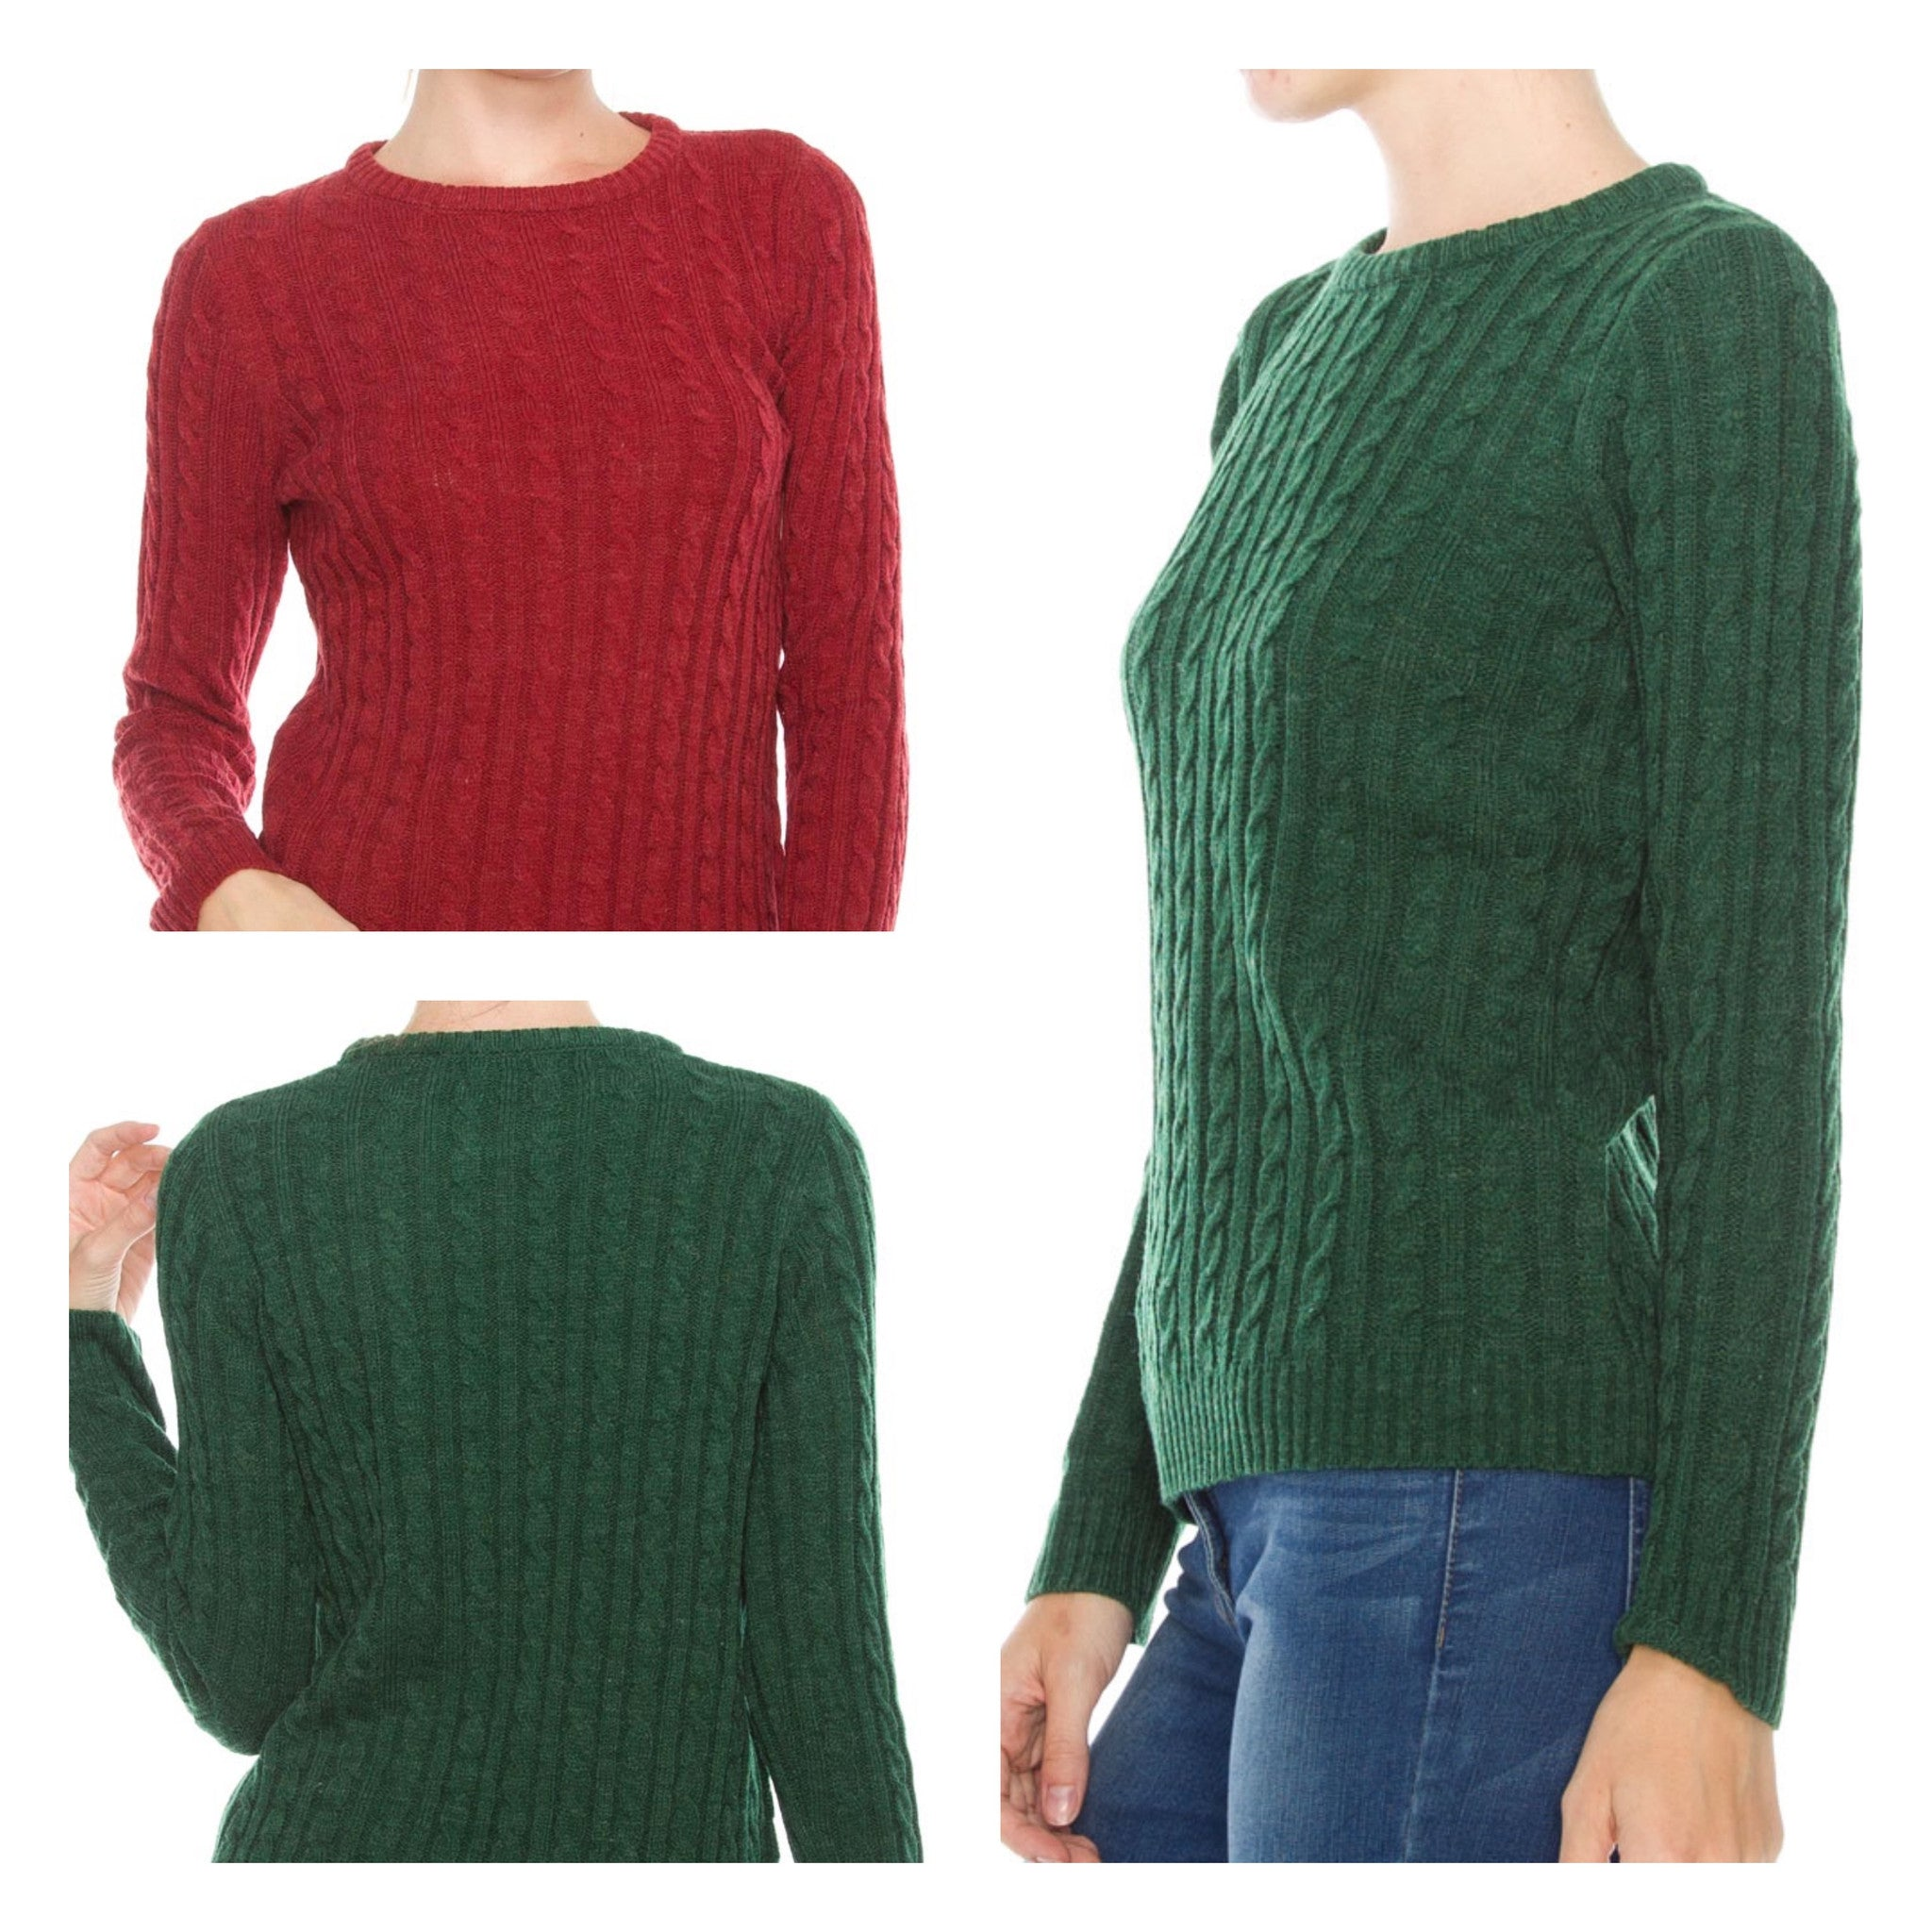 final sale | cable knit sweater in red